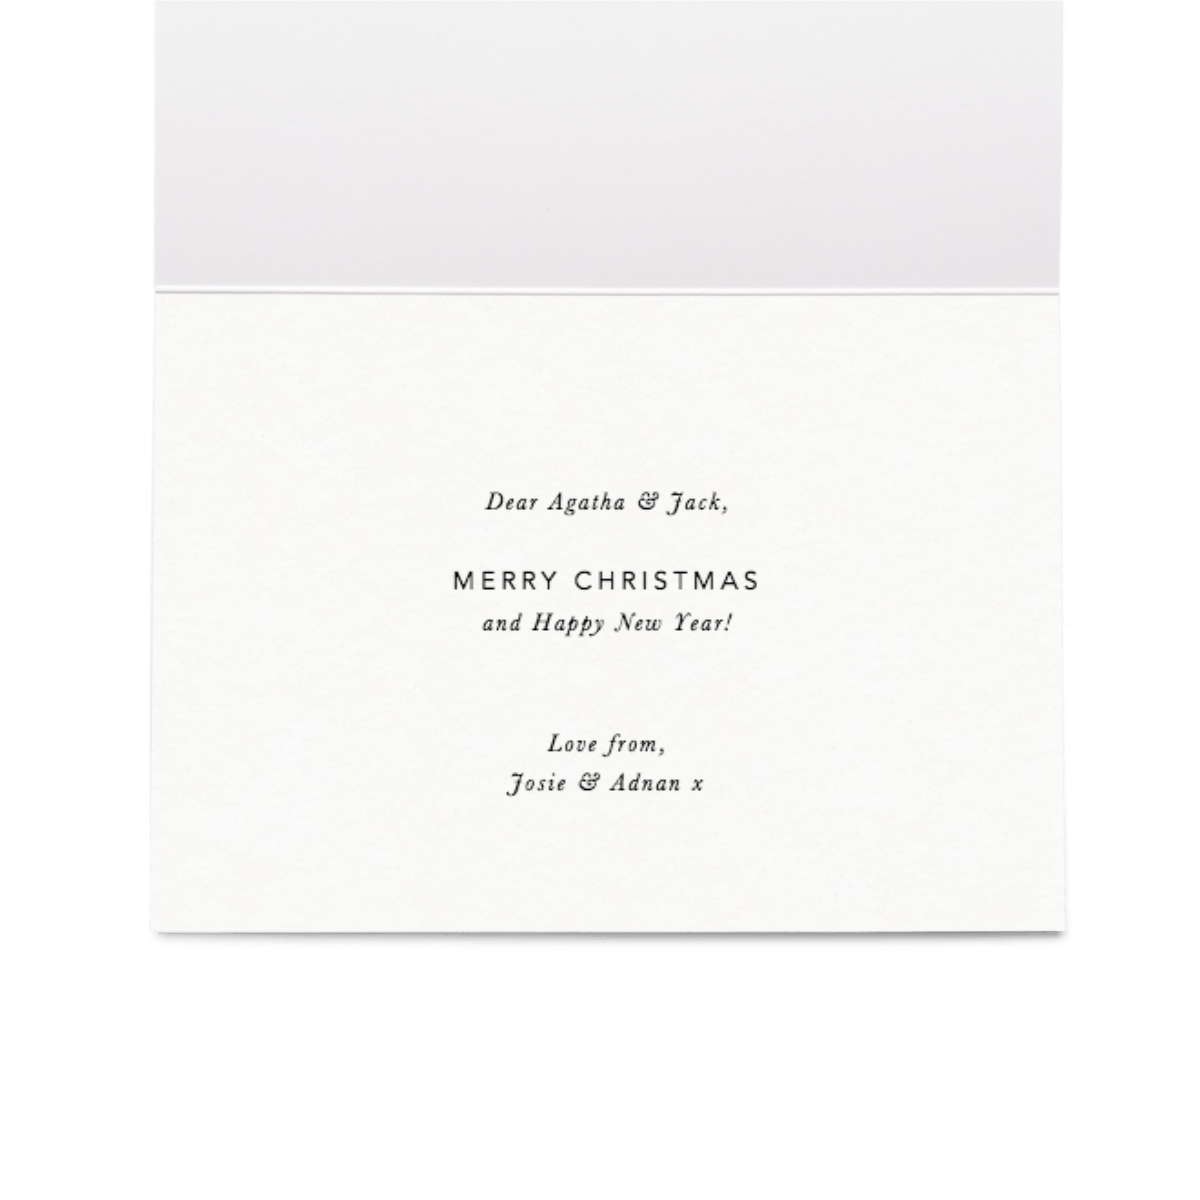 Https%3a%2f%2fwww.papier.com%2fproduct image%2f26964%2f20%2fseason s greetings starry 6733 inside 1542370442.png?ixlib=rb 1.1